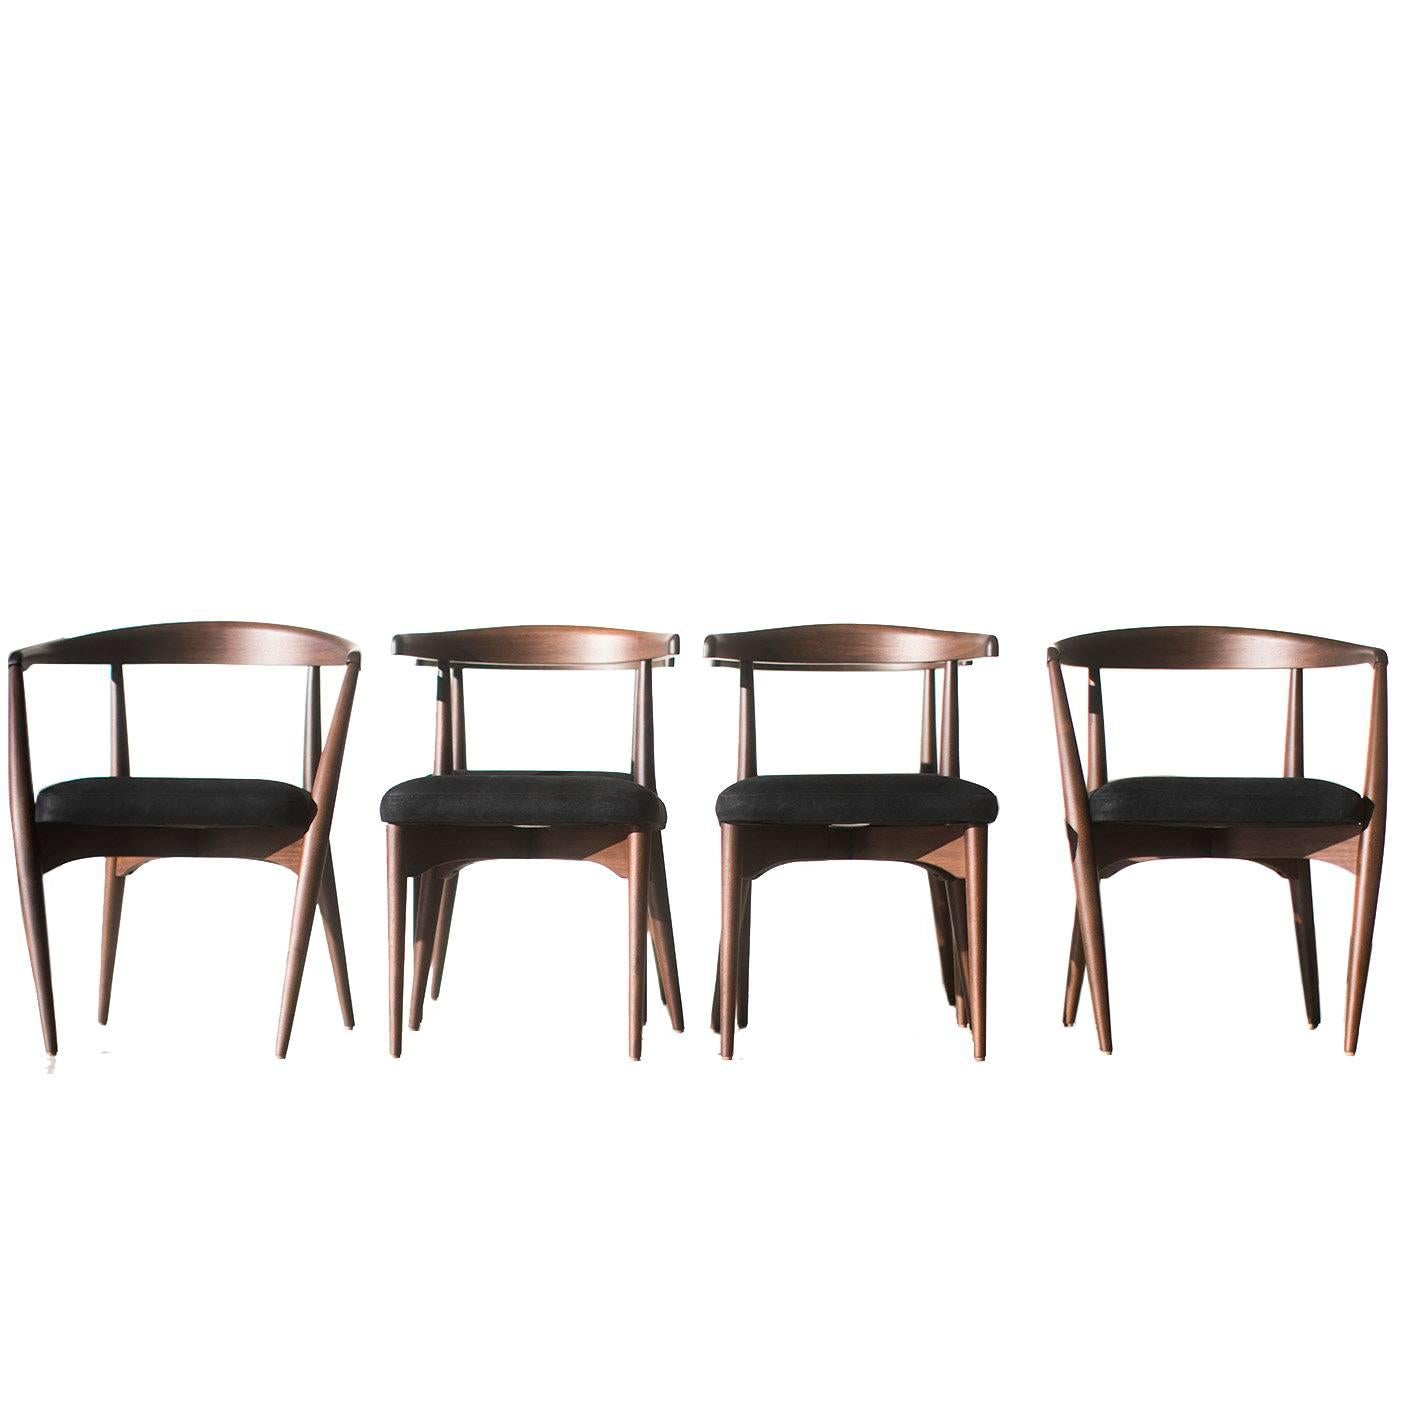 Lawrence Peabody Dining Chairs For Craft Associates